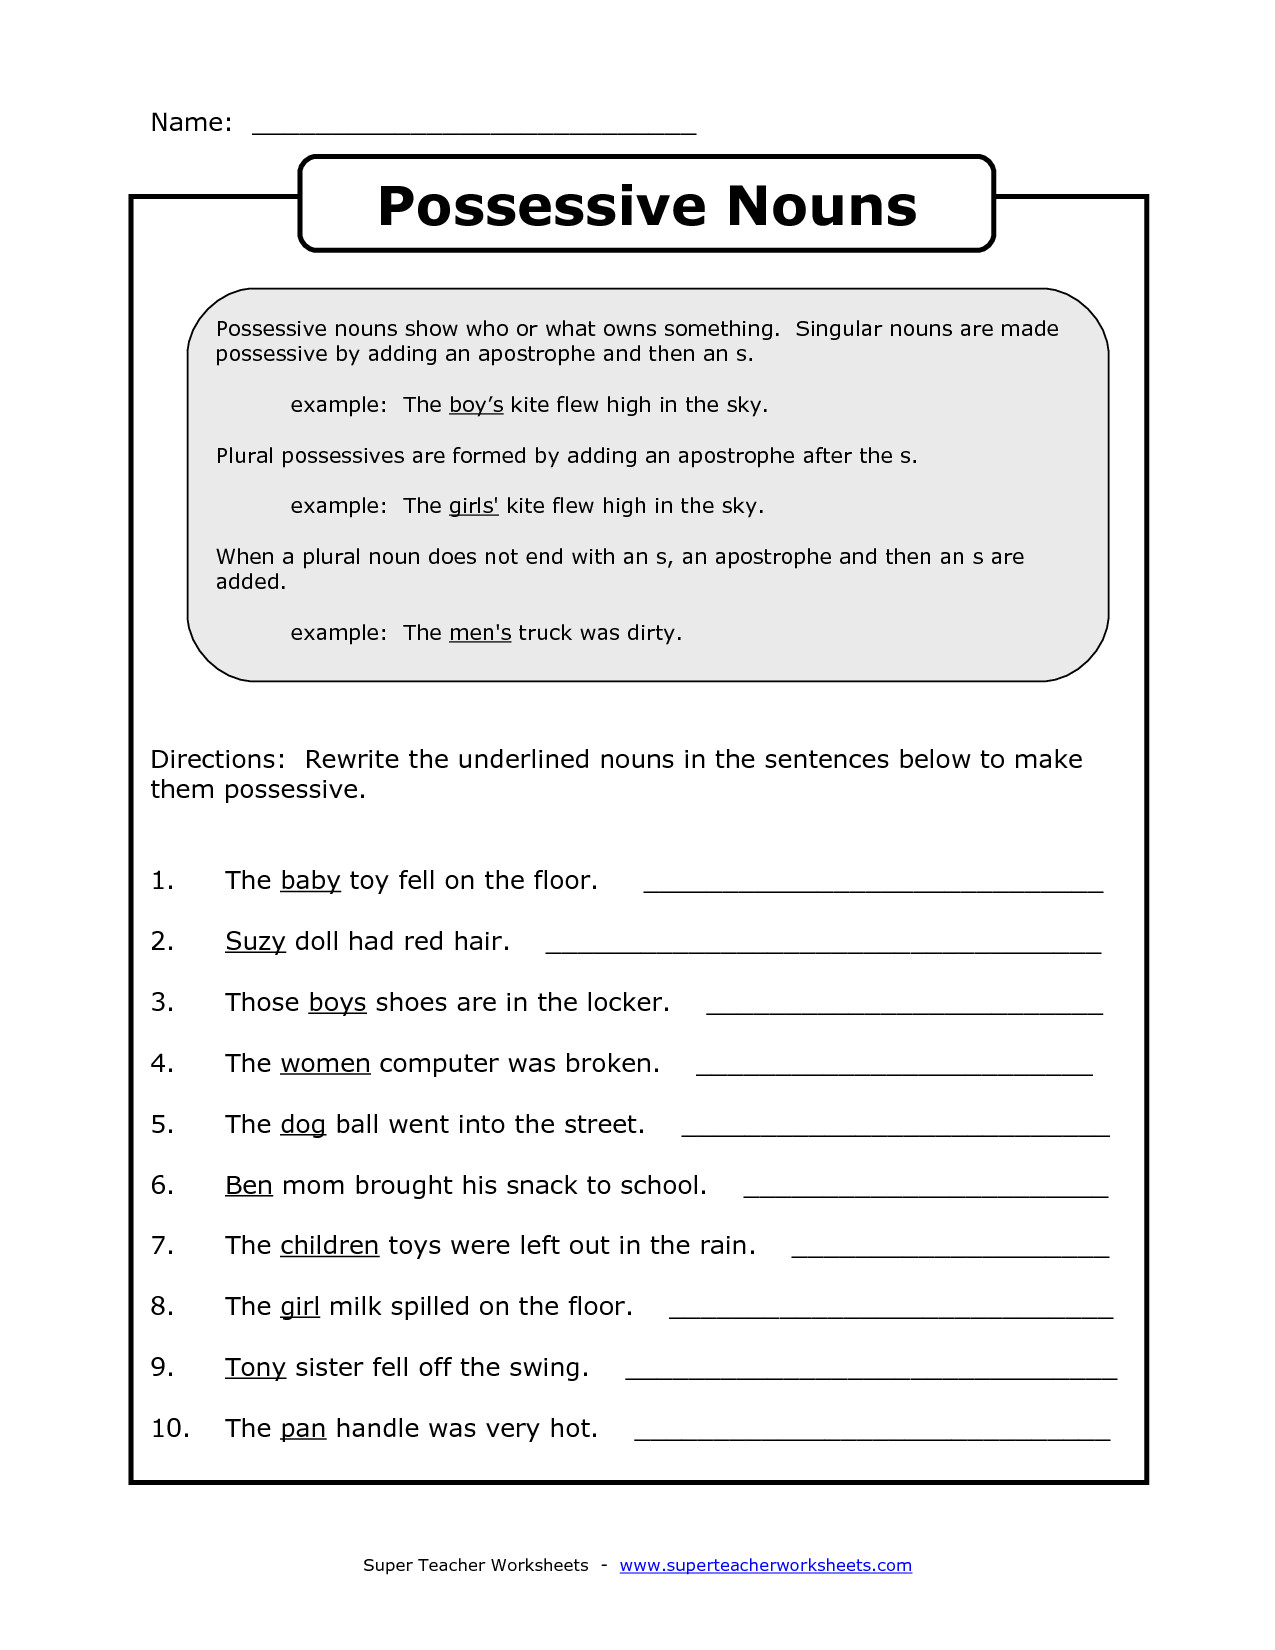 Possessive Nouns Worksheets 1st Grade Possessive Nouns Worksheets Elementary